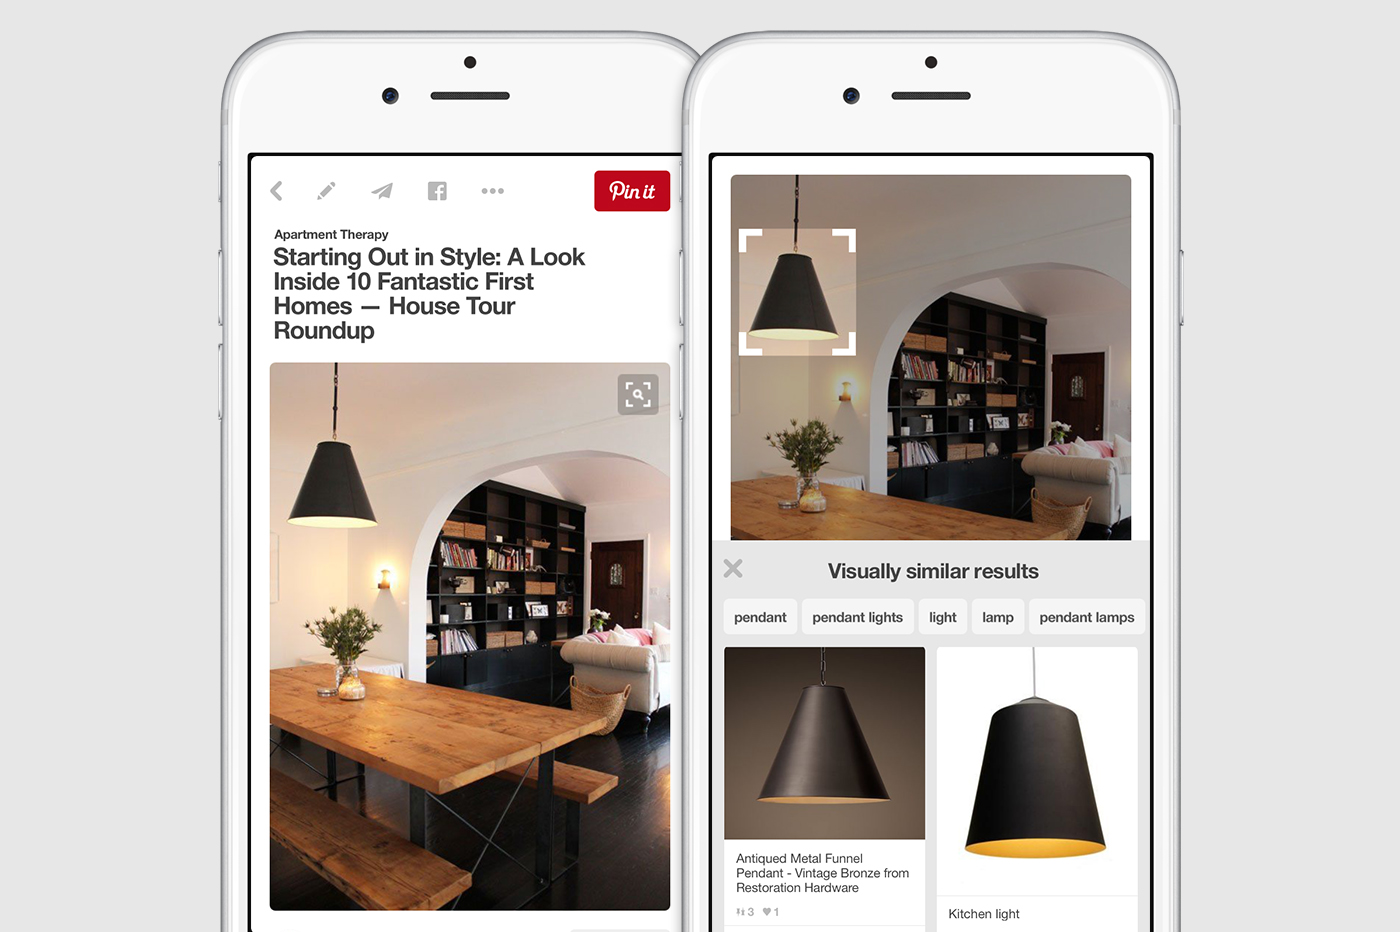 Pinterest Launches New Visual Search Tool